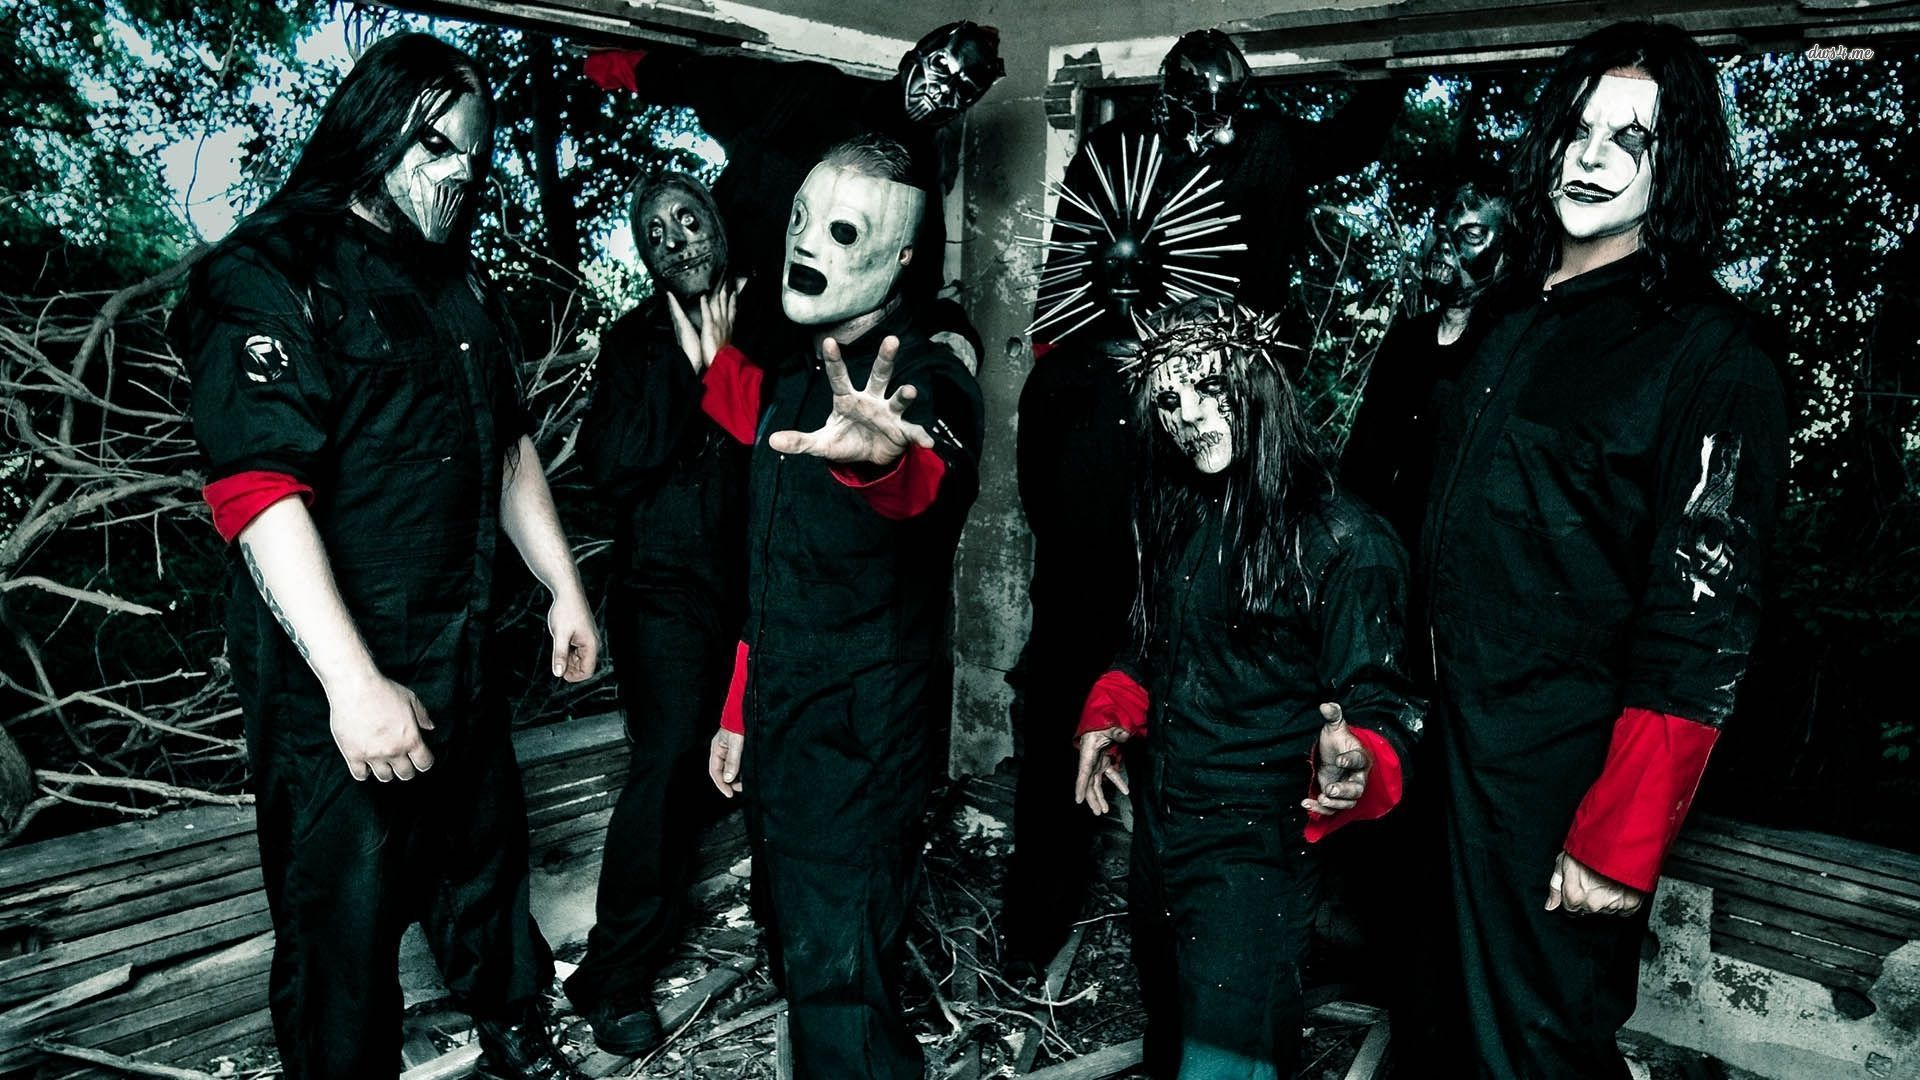 Music Related Wallpapers Group 86: Slipknot Wallpapers, Pictures, Images